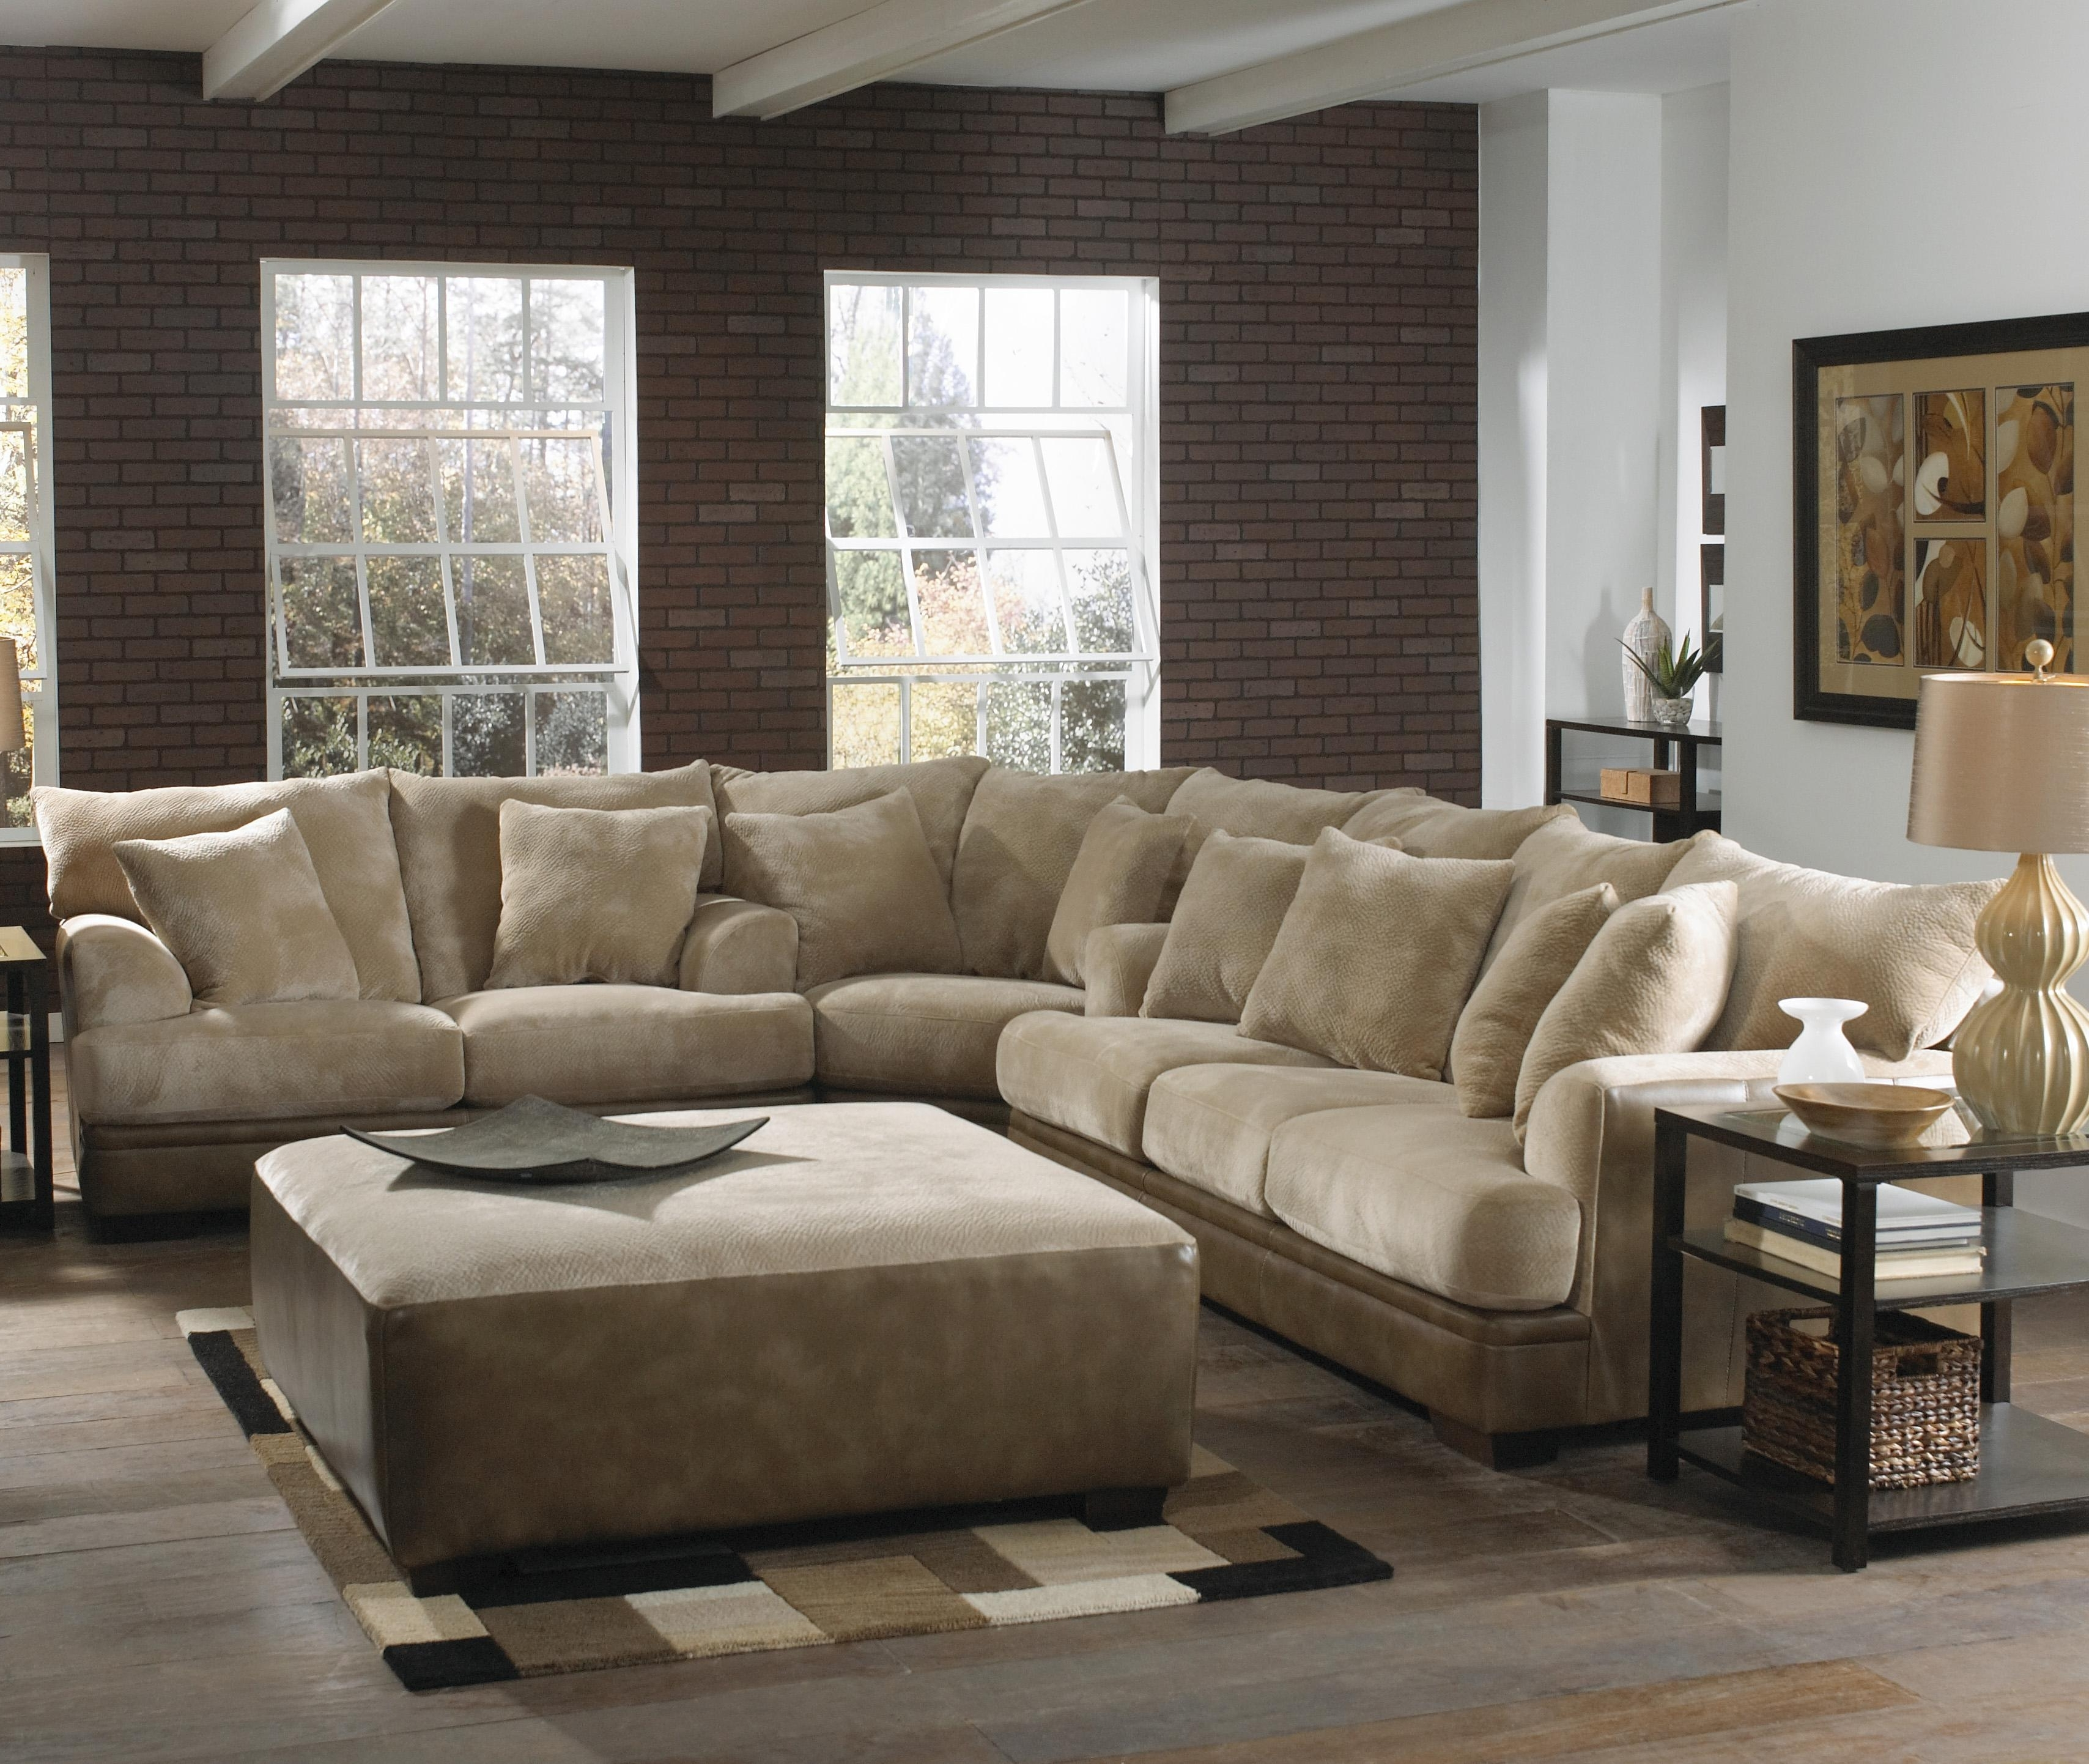 2018 The Brick Sectional Sofas Within 7 Seat Sectional Sofa – Cleanupflorida (View 16 of 20)